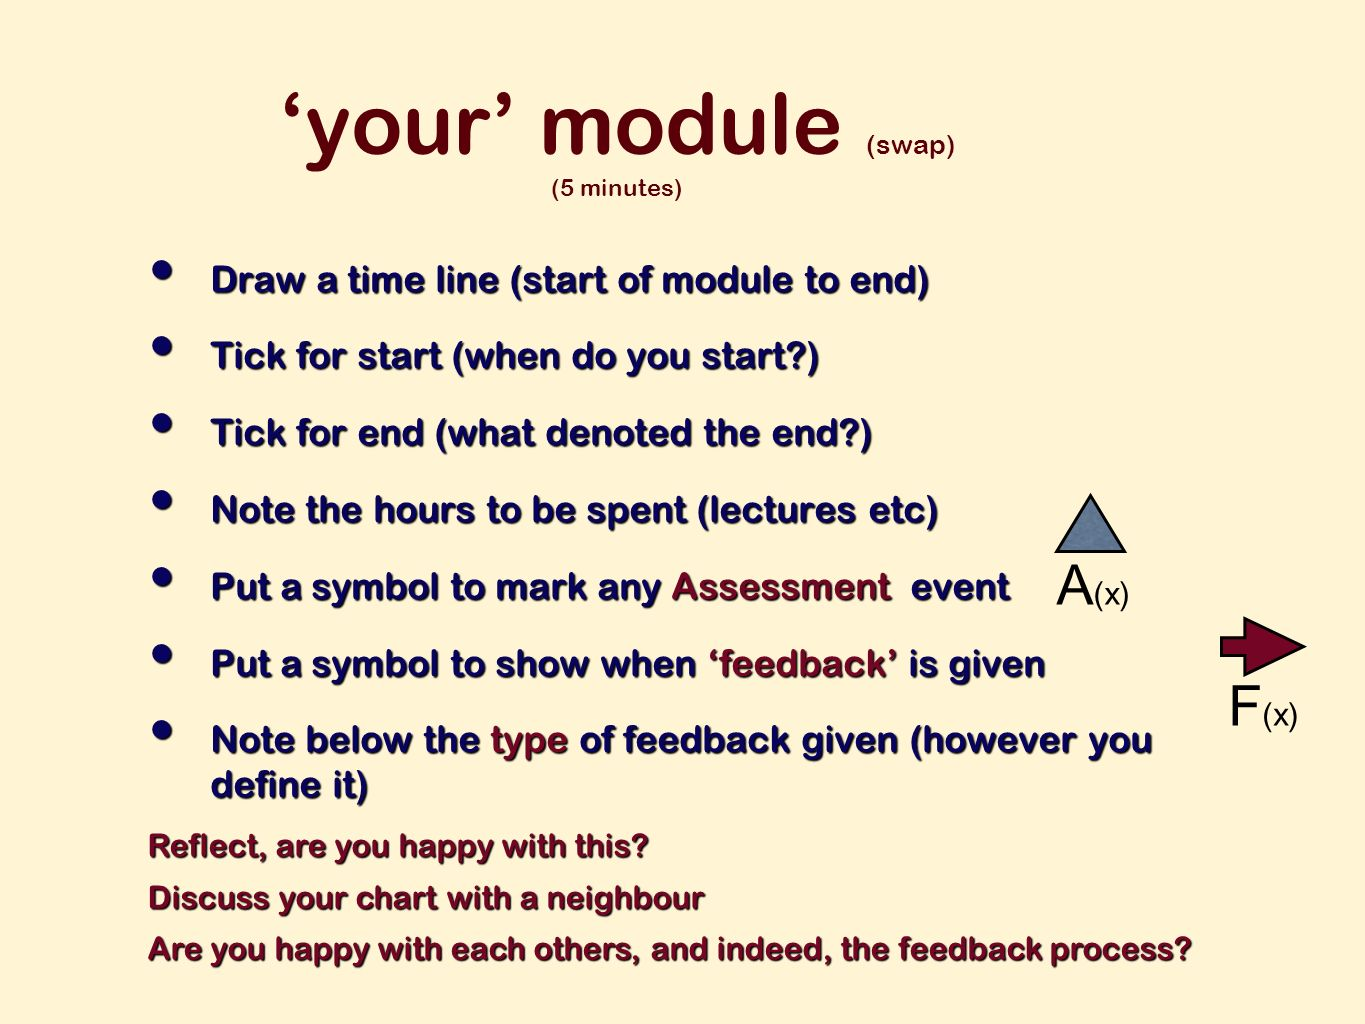 your module (swap) (5 minutes) Draw a time line (start of module to end) Draw a time line (start of module to end) Tick for start (when do you start ) Tick for start (when do you start ) Tick for end (what denoted the end ) Tick for end (what denoted the end ) Note the hours to be spent (lectures etc) Note the hours to be spent (lectures etc) Put a symbol to mark any Assessment event Put a symbol to mark any Assessment event Put a symbol to show when feedback is given Put a symbol to show when feedback is given Note below the type of feedback given (however you define it) Note below the type of feedback given (however you define it) A (x) F (x) Reflect, are you happy with this.